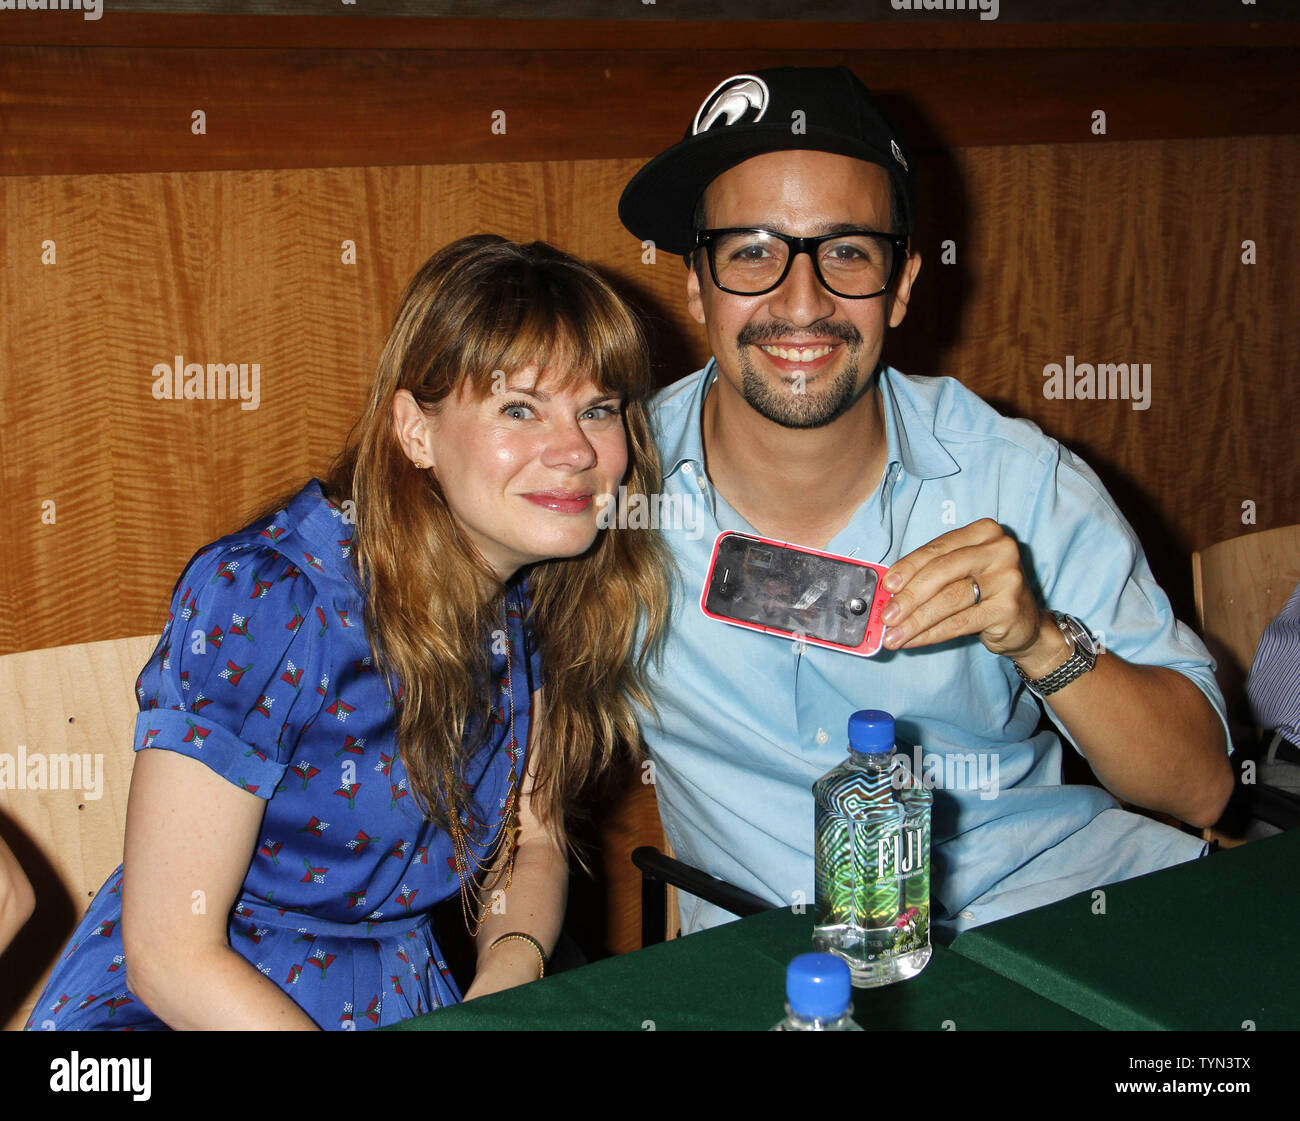 Lin-Manuel Miranda and Celia Keenan-Bolger from the cast of 'Merrily We Roll Along' attends CD signing at Barnes & Noble in New York on July 10, 2012.       UPI /Laura Cavanaugh - Stock Image